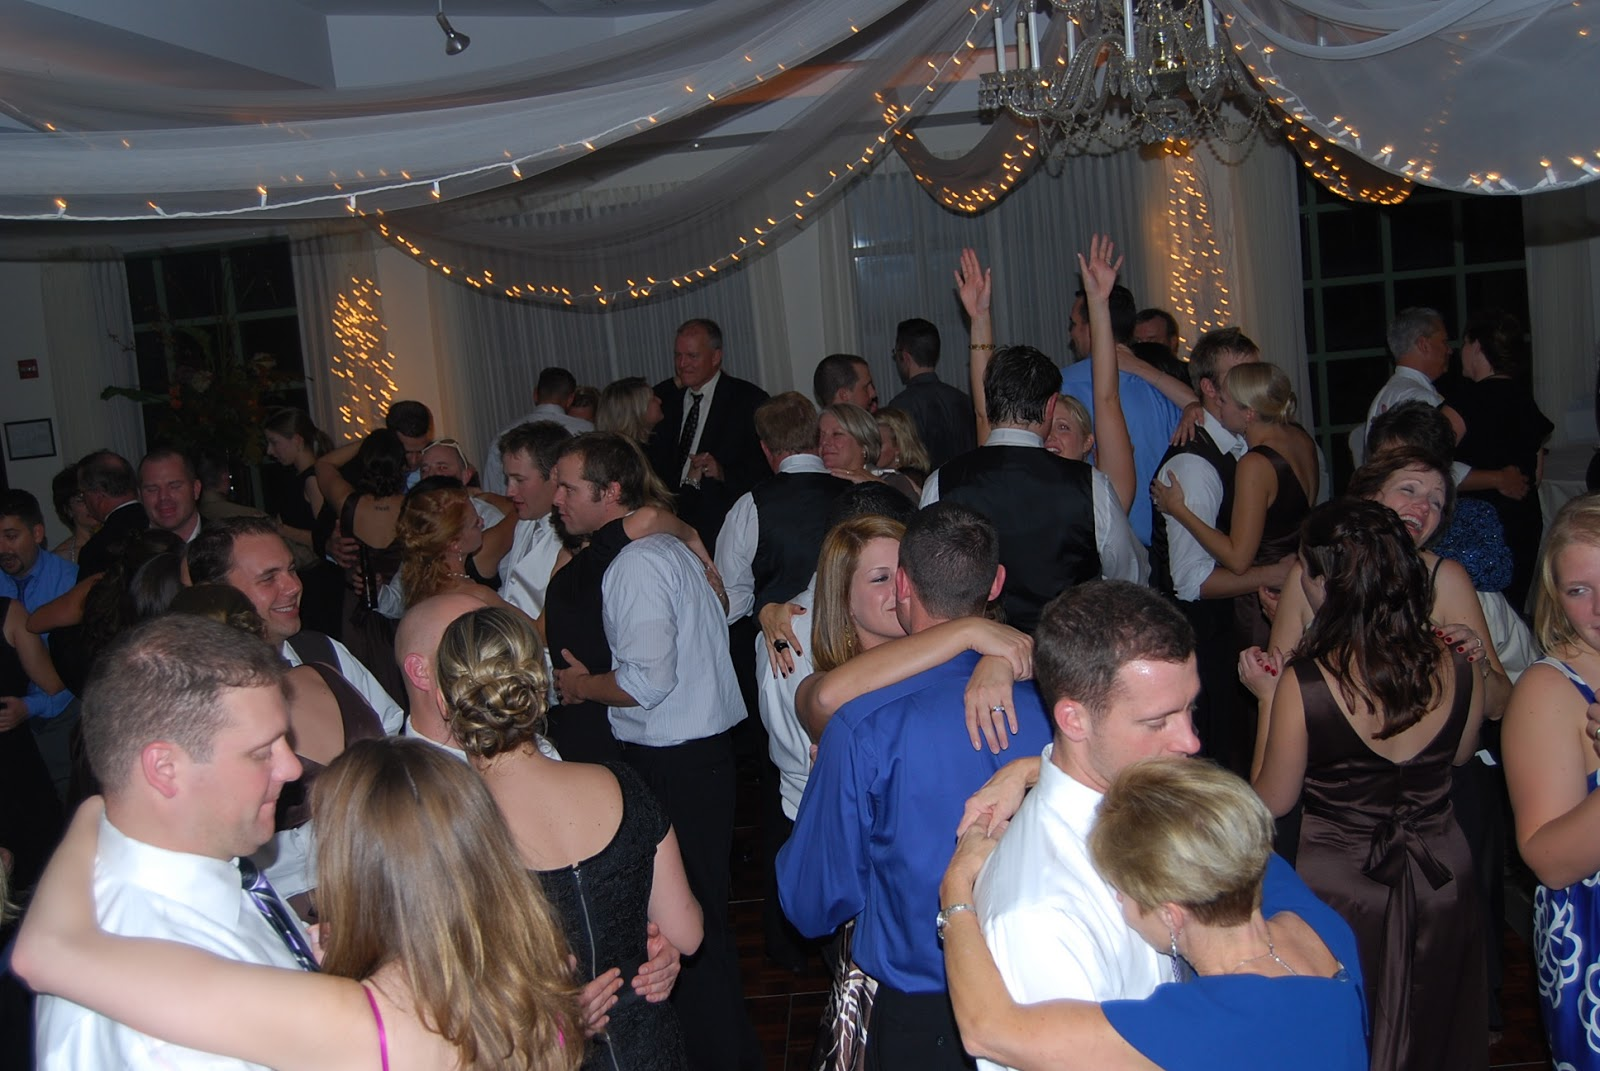 Weddings, Parties, Music & More: How To Stream Your